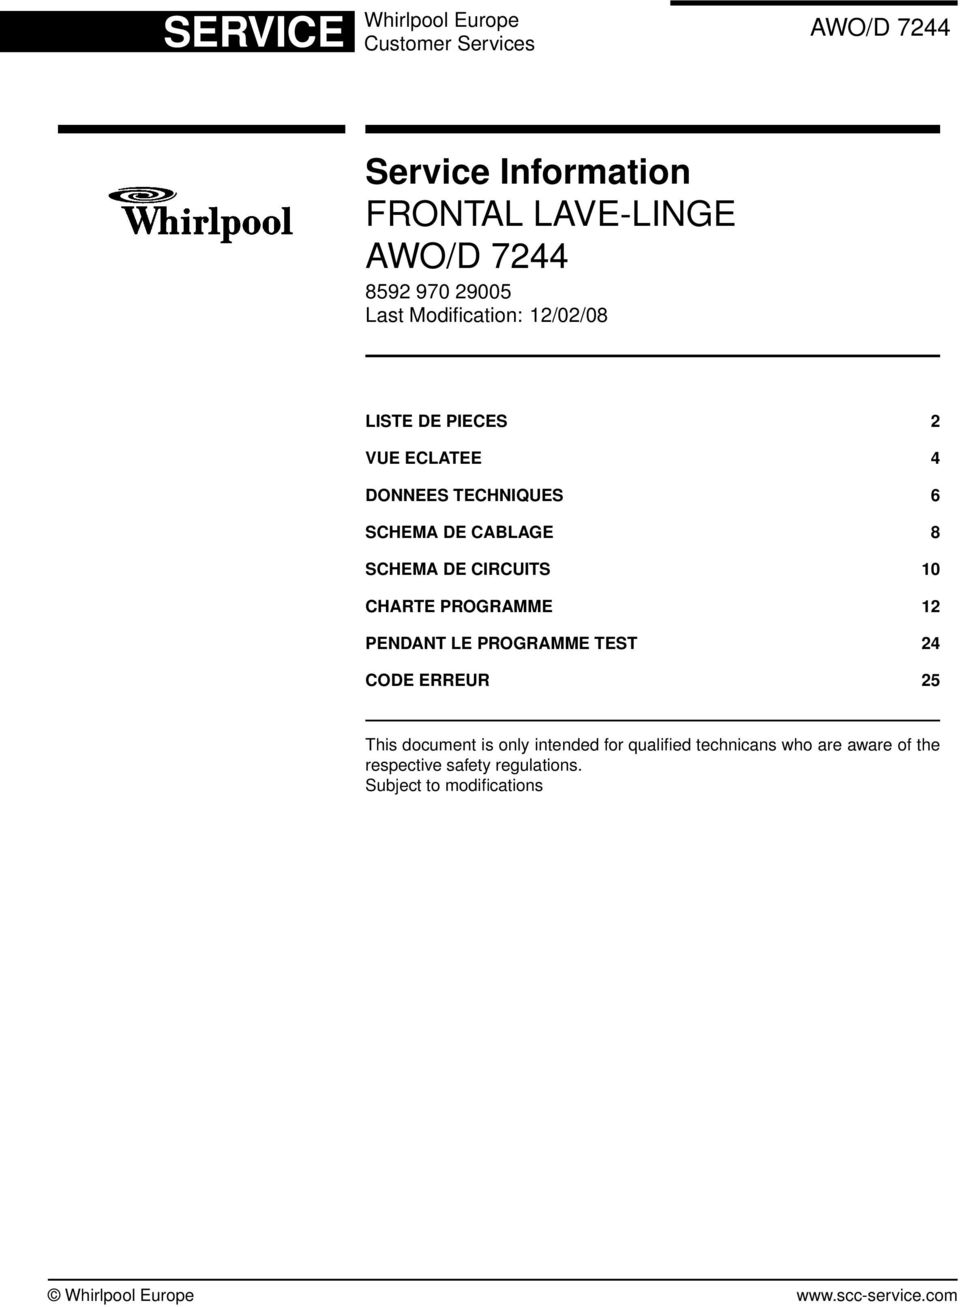 whirlpool europe customer services. service information frontal lave